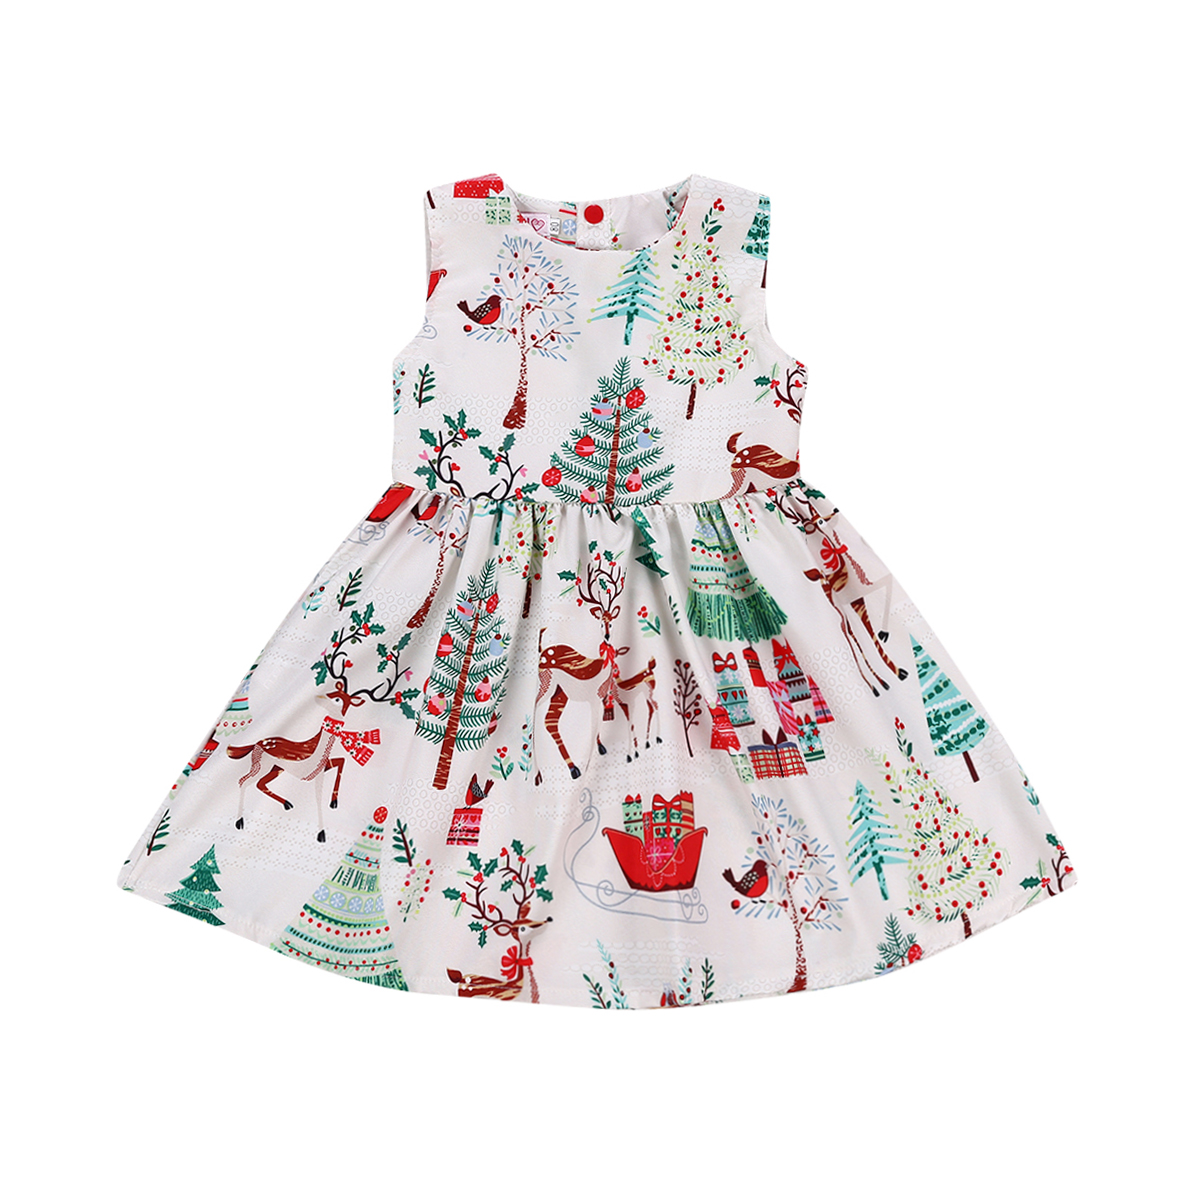 Toddler Kid Baby Girl Dress Christmas Costumes Cartoon Deer Sleeveless Party Tutu Dress For Girls Clothes 2-6Y